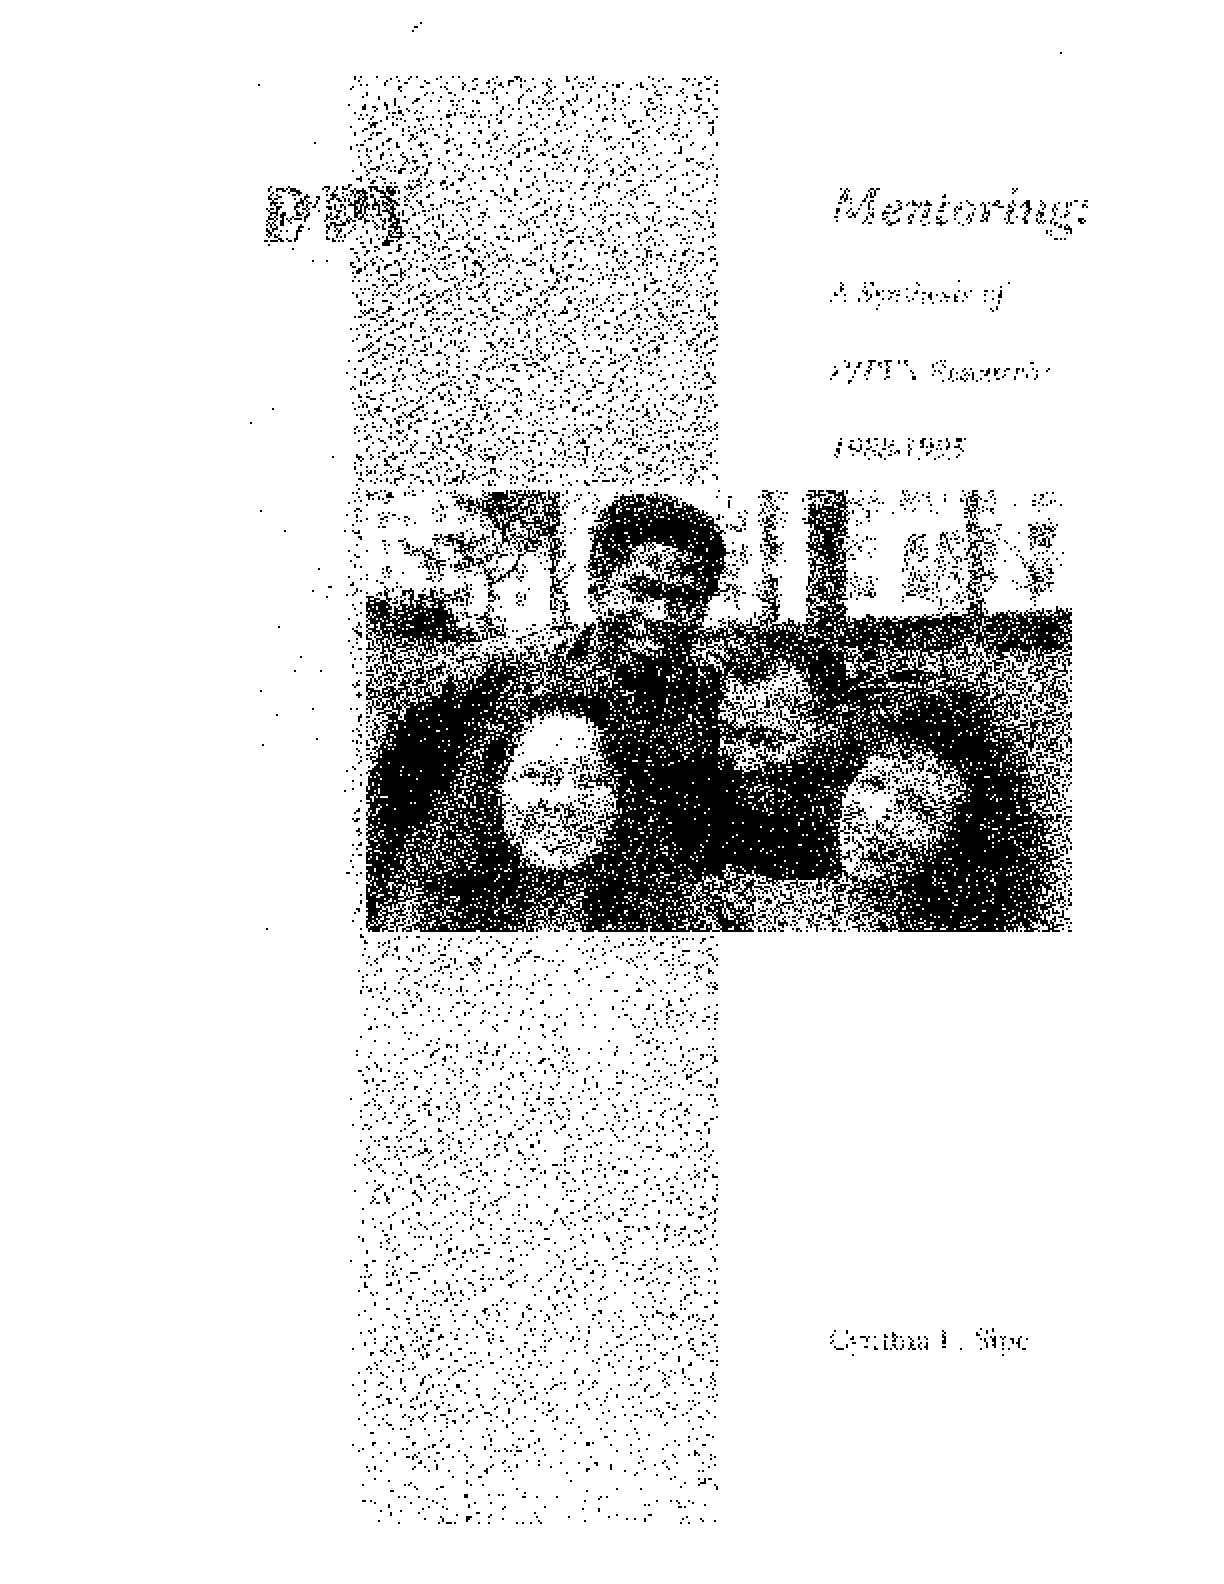 Mentoring: A Synthesis of P/PV's Research: 1988-1995